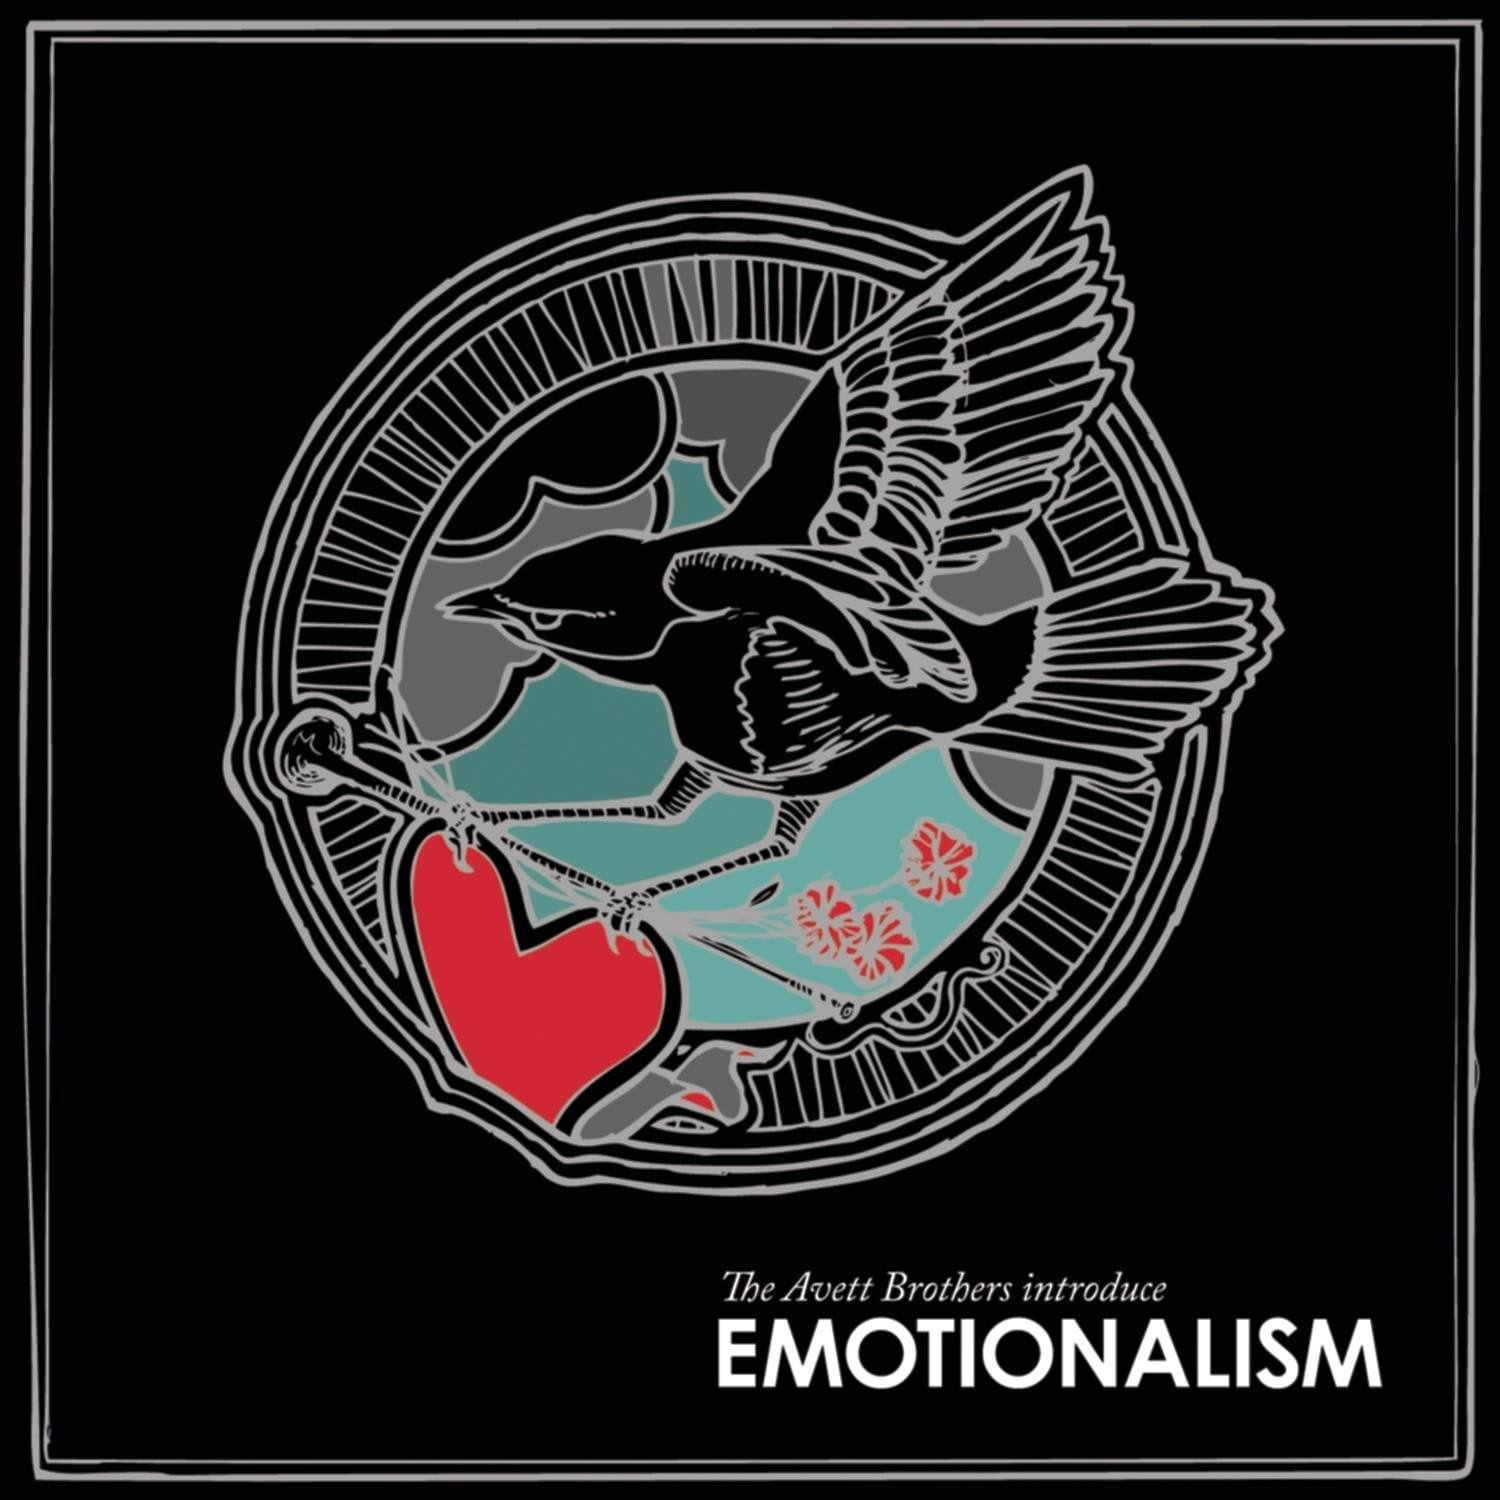 Avett Brothers - Emotionalism